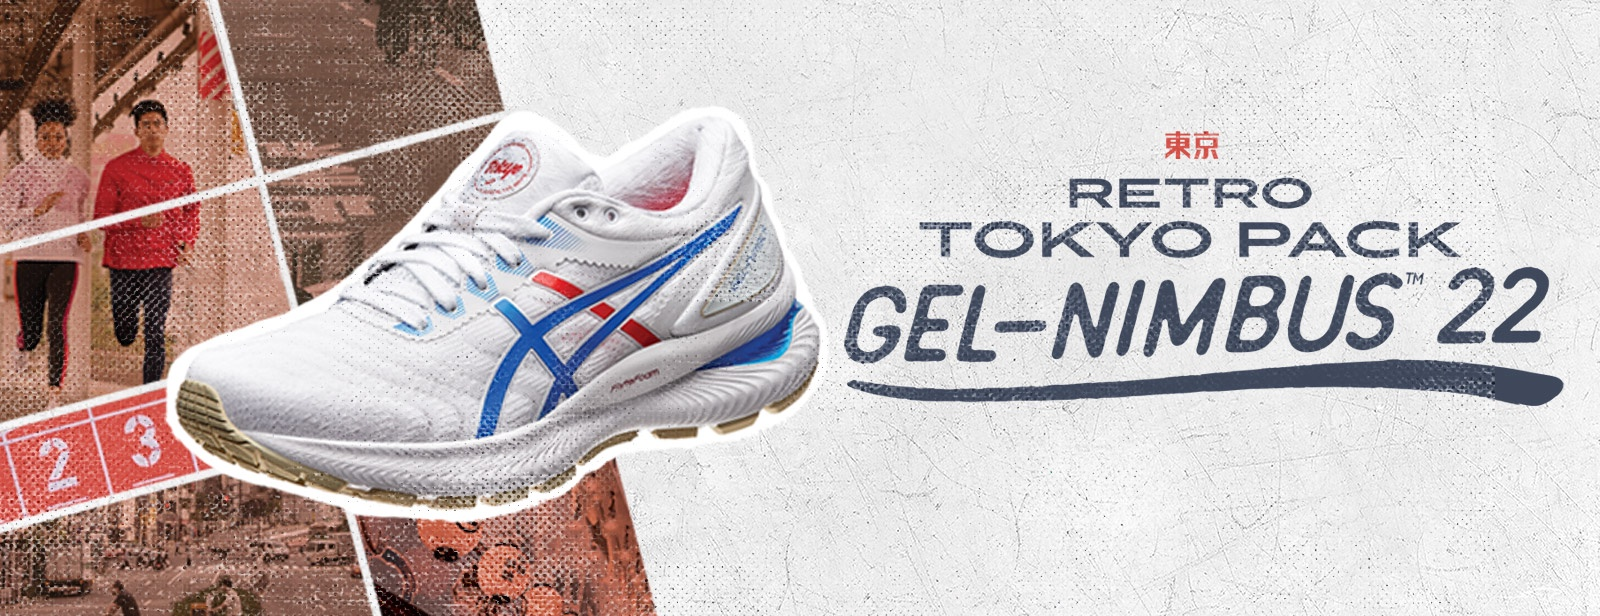 asics shoes womens philippines name